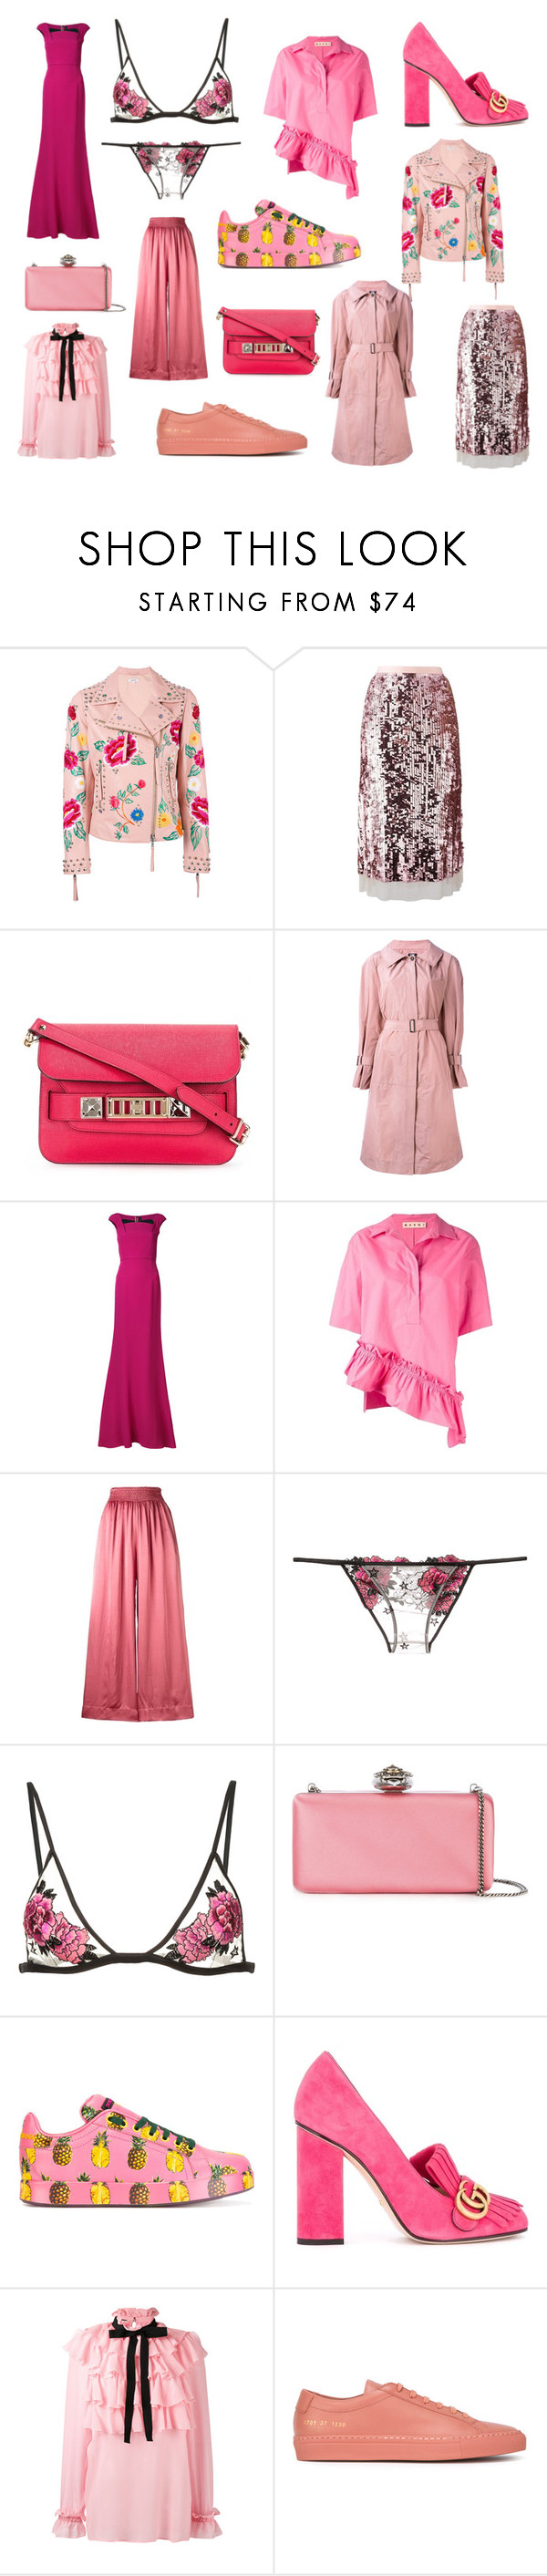 """Trend: Think Pink"" by farfetch ❤ liked on Polyvore featuring P.A.R.O.S.H., Tory Burch, Proenza Schouler, Jil Sander Navy, Roland Mouret, Marni, Forte Forte, Fleur du Mal, Alexander McQueen and Dolce&Gabbana"